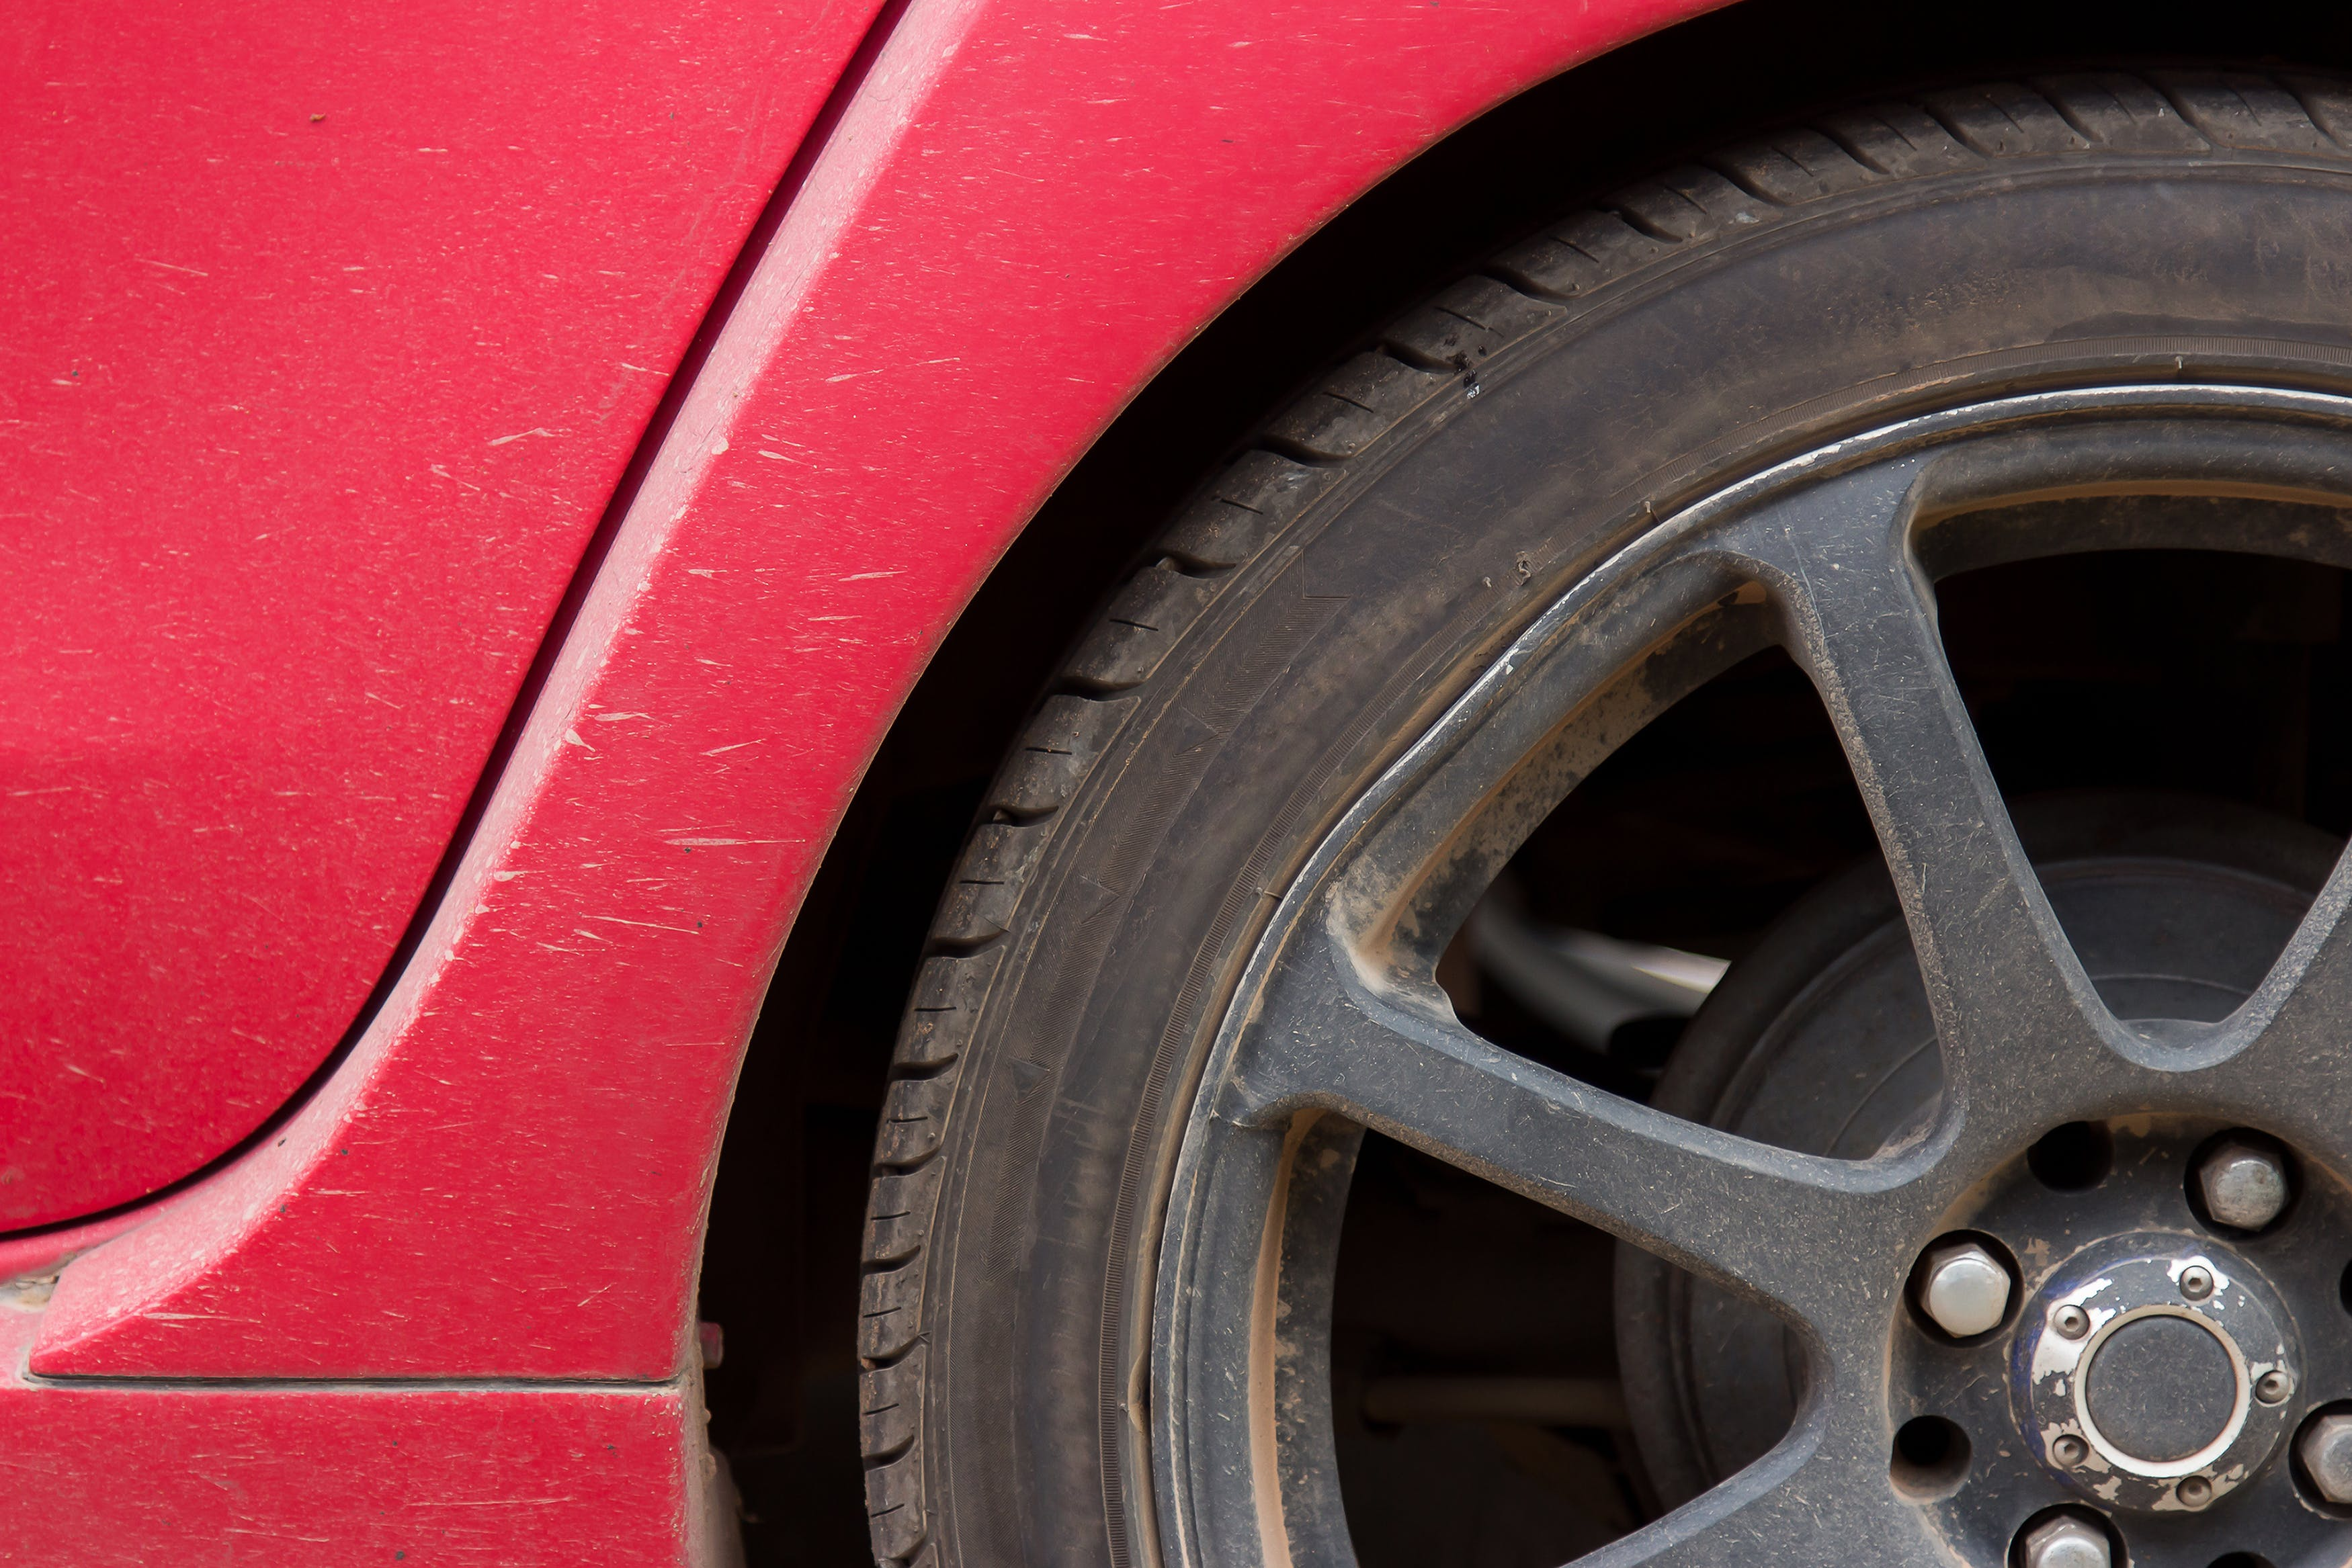 Close-up Photo of Vehicle Wheel and Tire